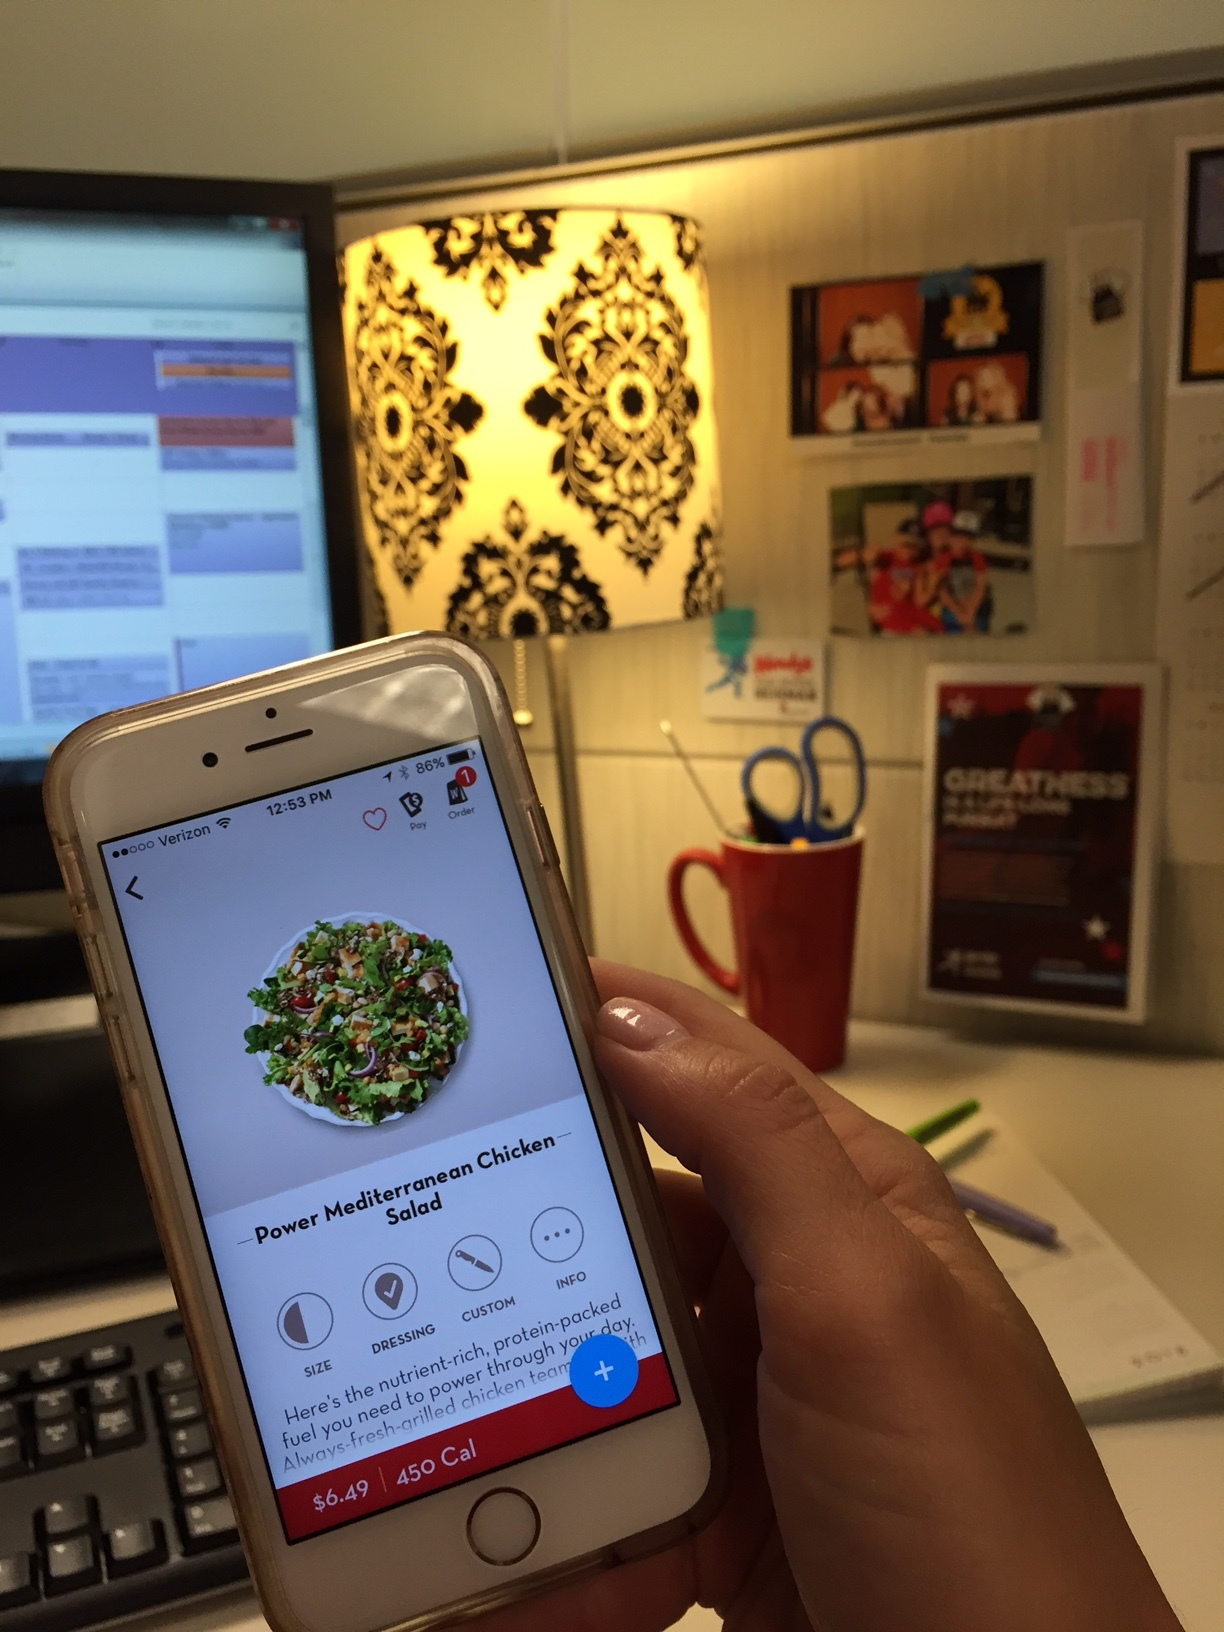 OUR MOBILE APP IS EASY TO USE, ALLOWS FOR CUSTOMIZATION AND CALCULATES NUTRITION INFORMATION